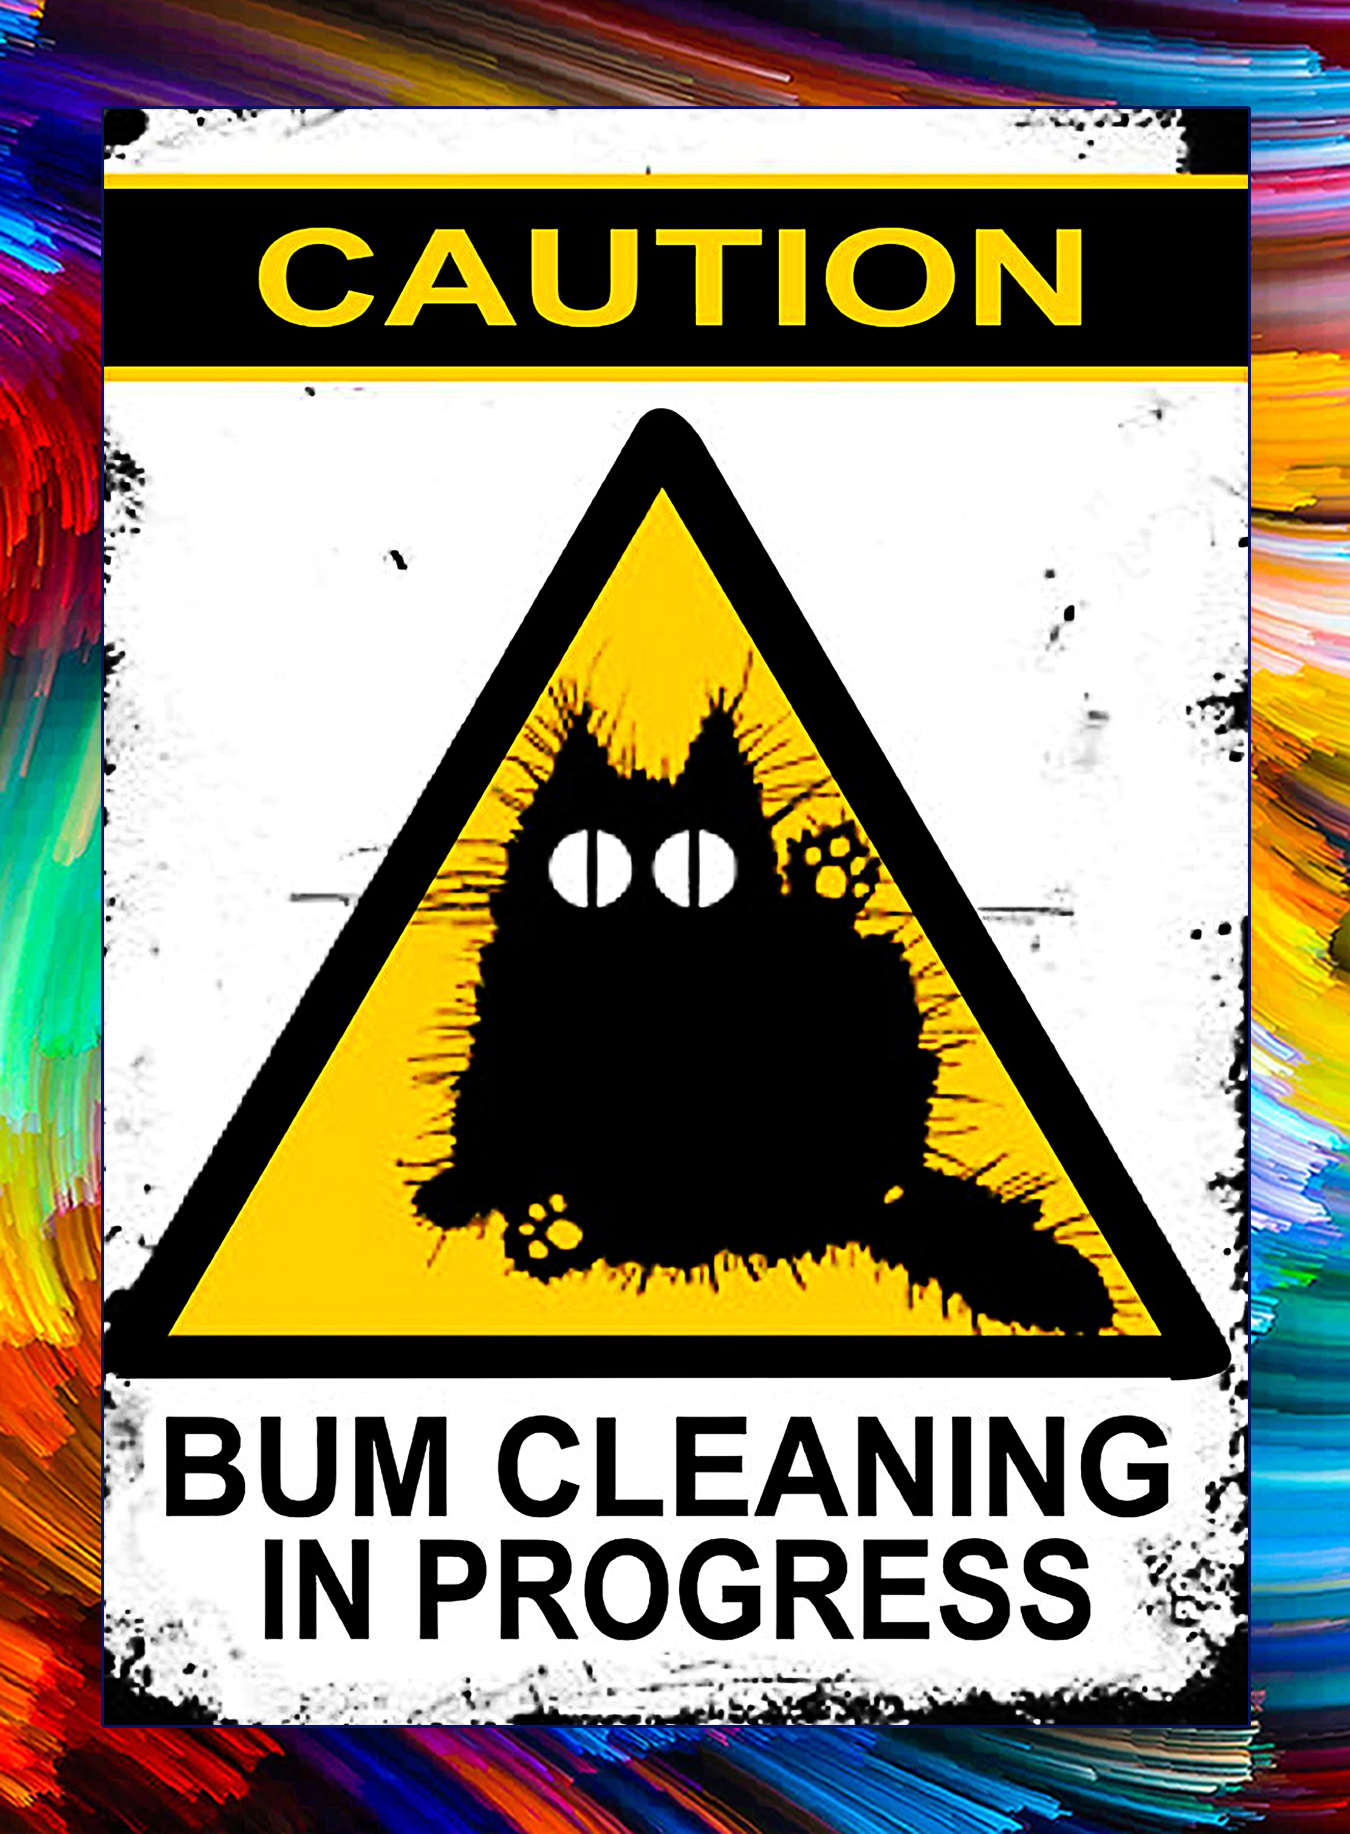 Cat Caution bum cleaning in progress poster - A3